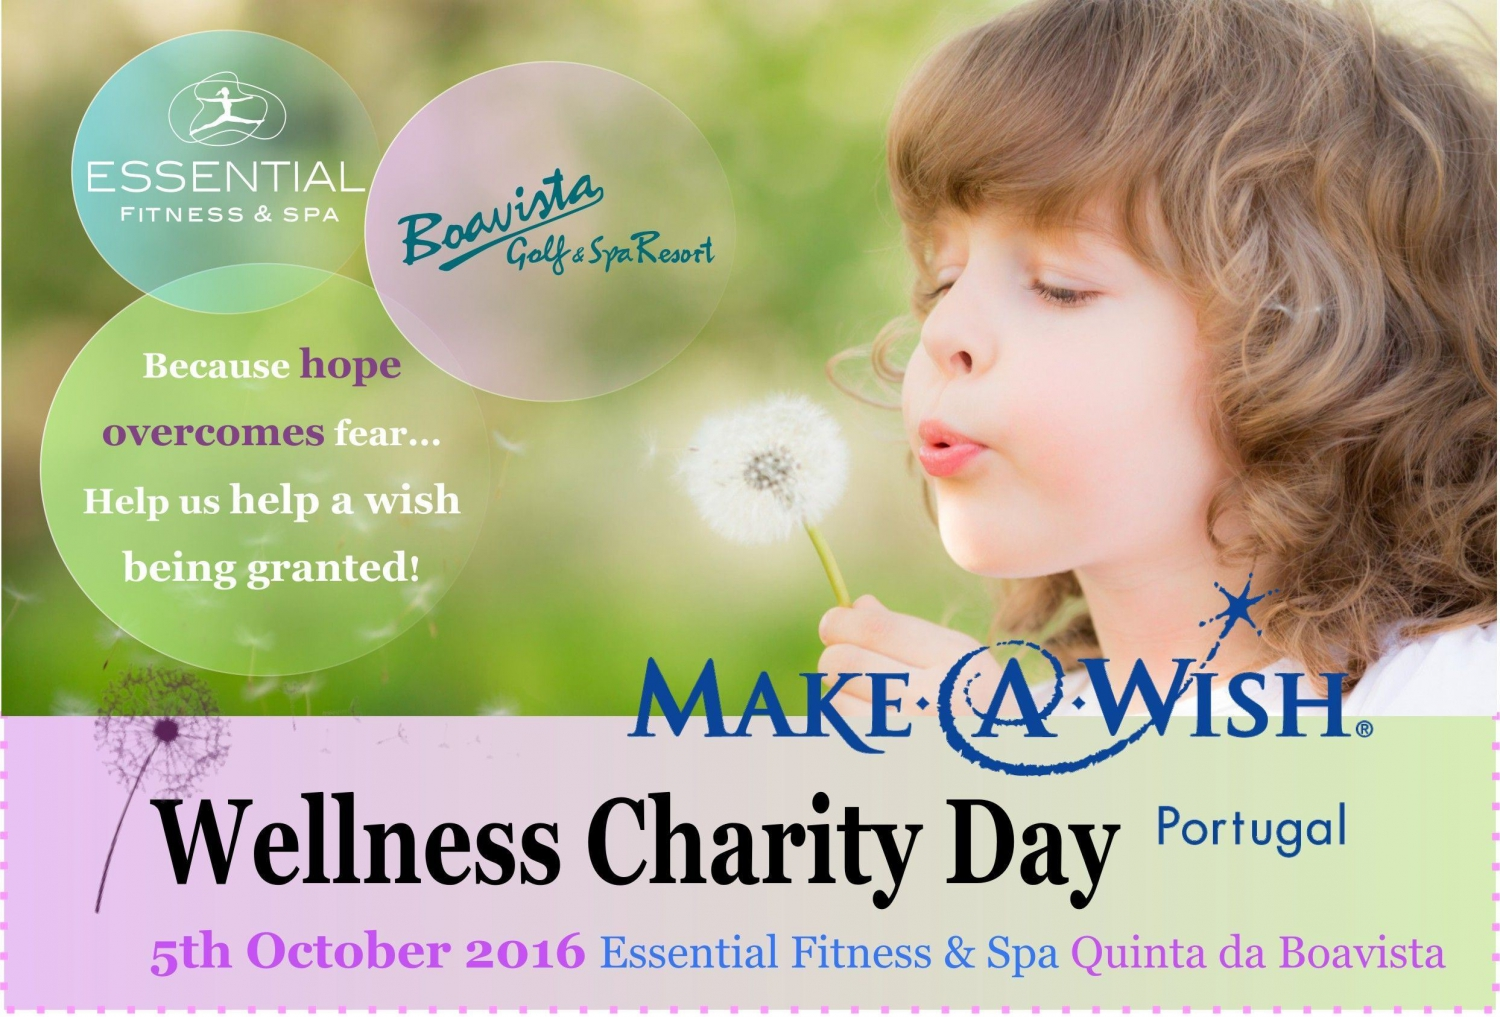 Make a Wish Portugal Wellness Charity Day